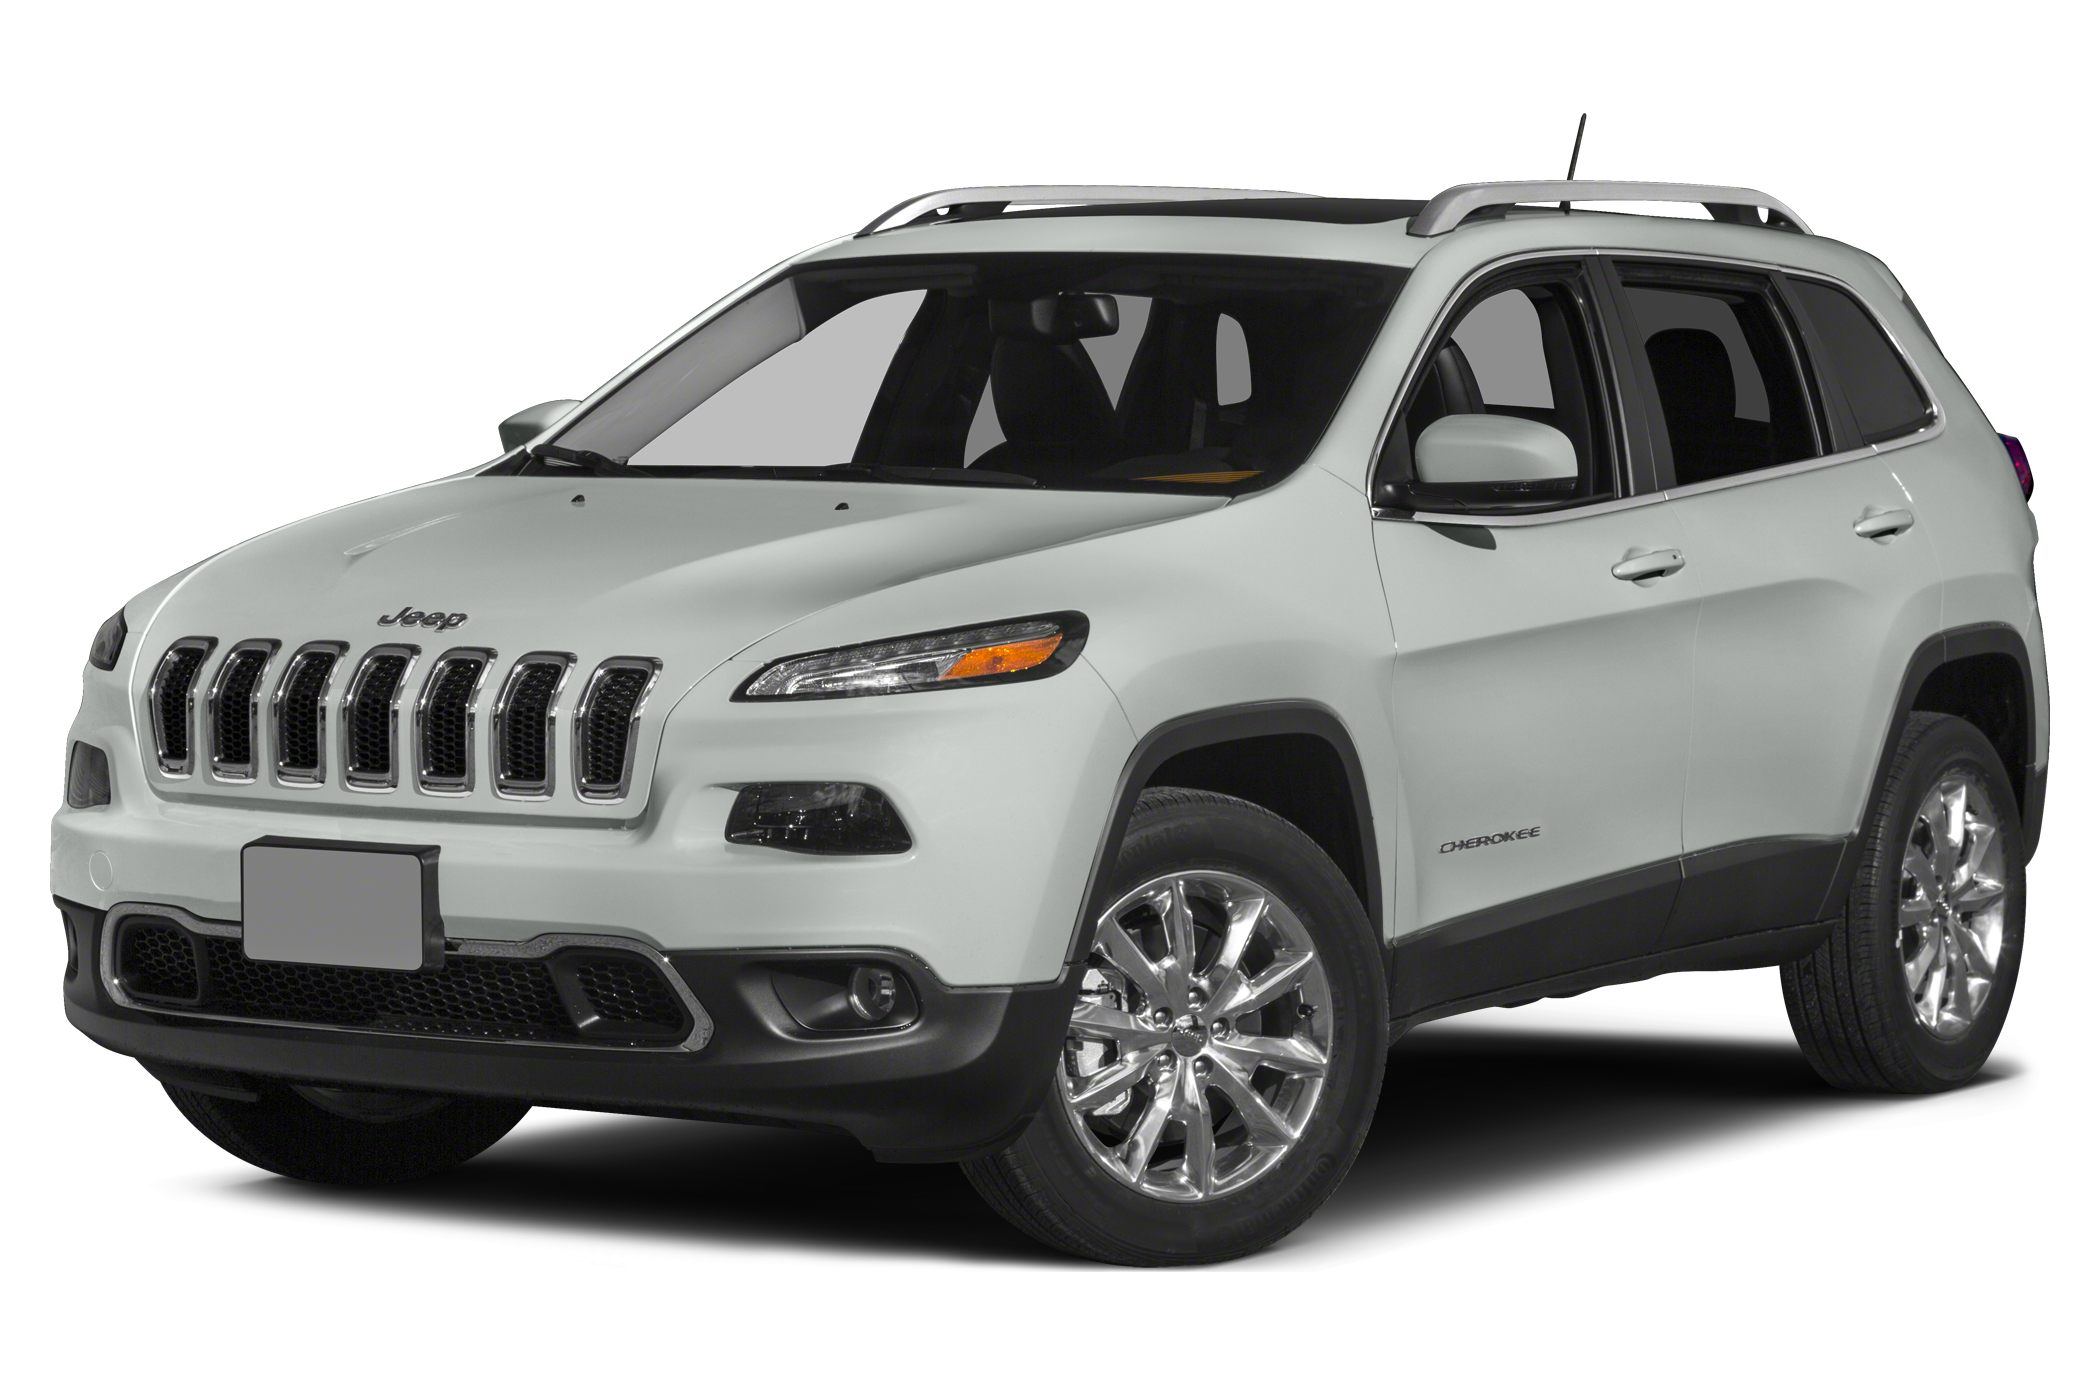 2015 Jeep Cherokee Latitude SUV for sale in Los Angeles for $26,780 with 8 miles